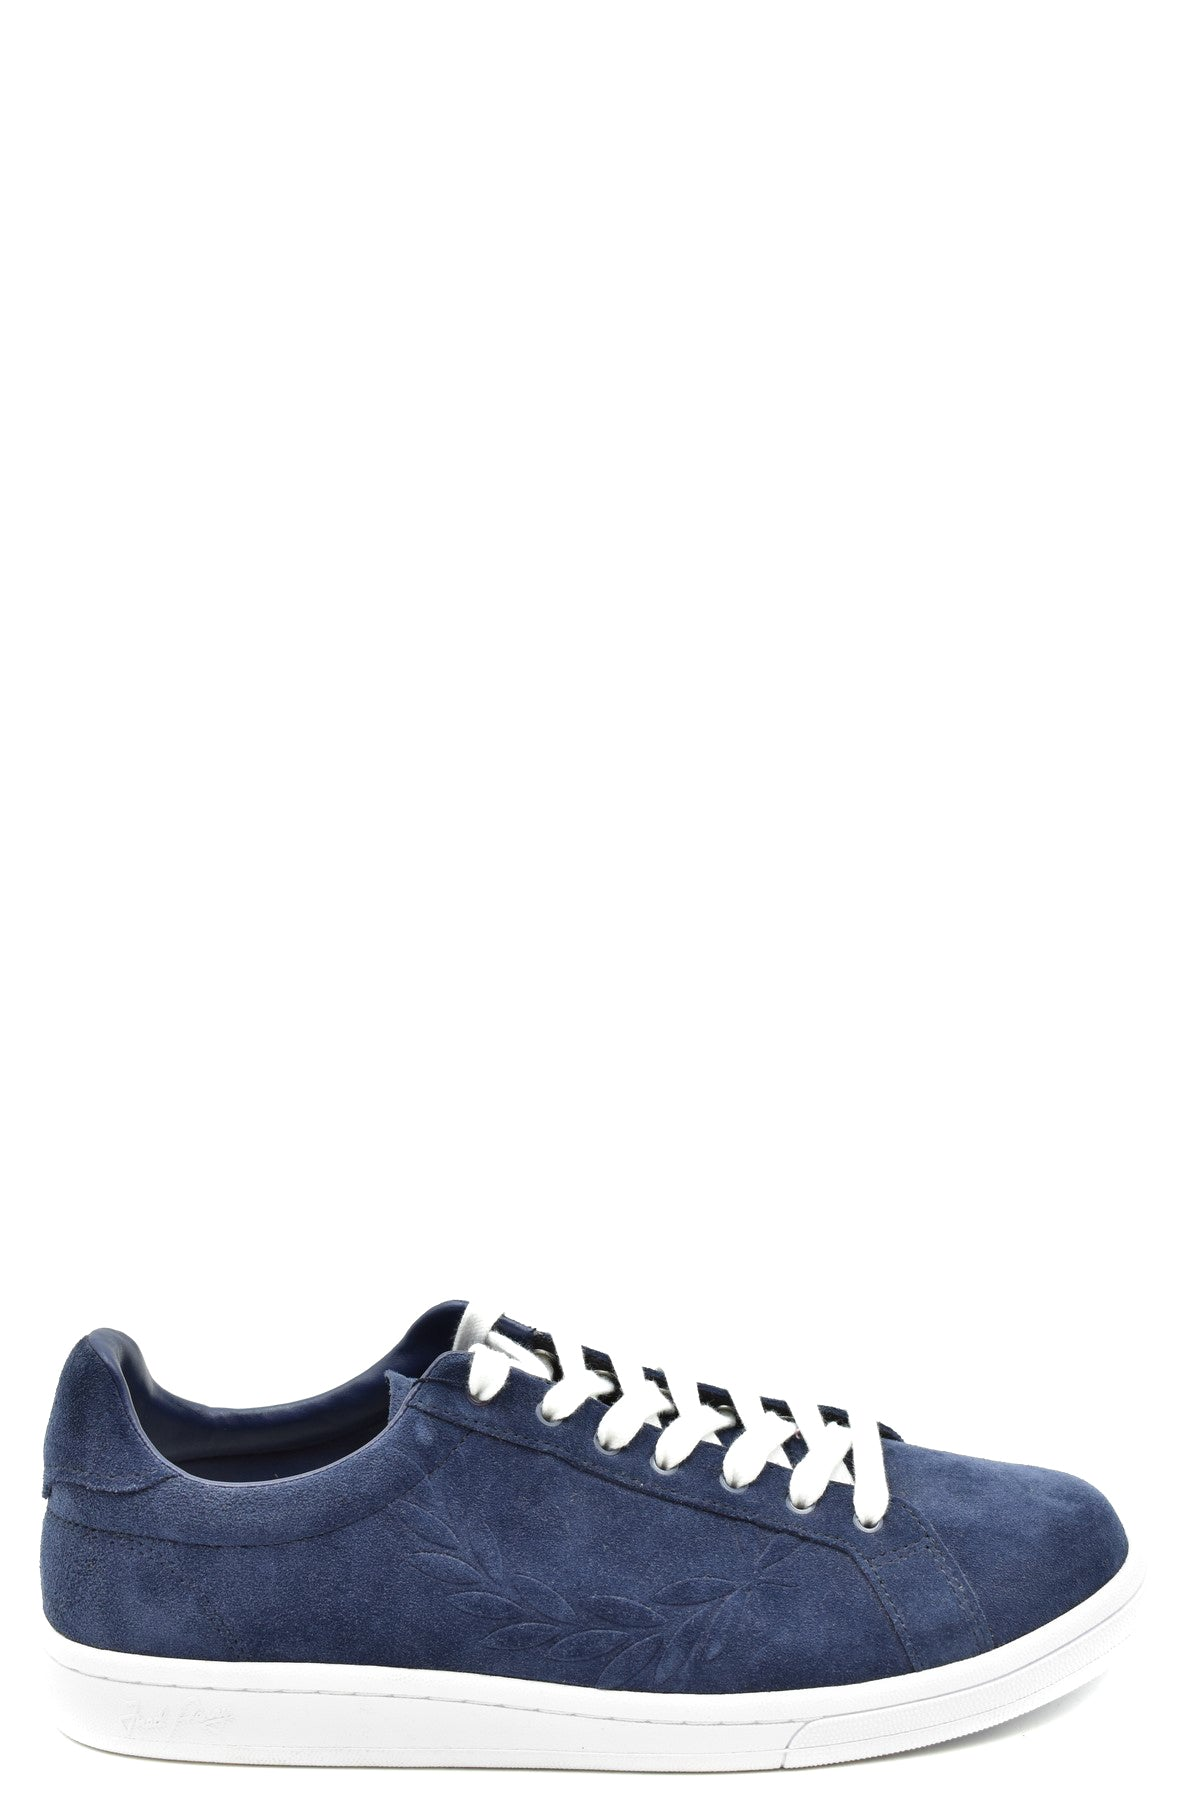 Shoes Fred Perry-Sports & Entertainment - Sneakers-6-Product Details Terms: New With LabelMain Color: BlueType Of Accessory: ShoesSeason: Fall / WinterMade In: VietnamGender: ManSize: UkComposition: Chamois 100%Year: 2019Manufacturer Part Number: B5180-Keyomi-Sook